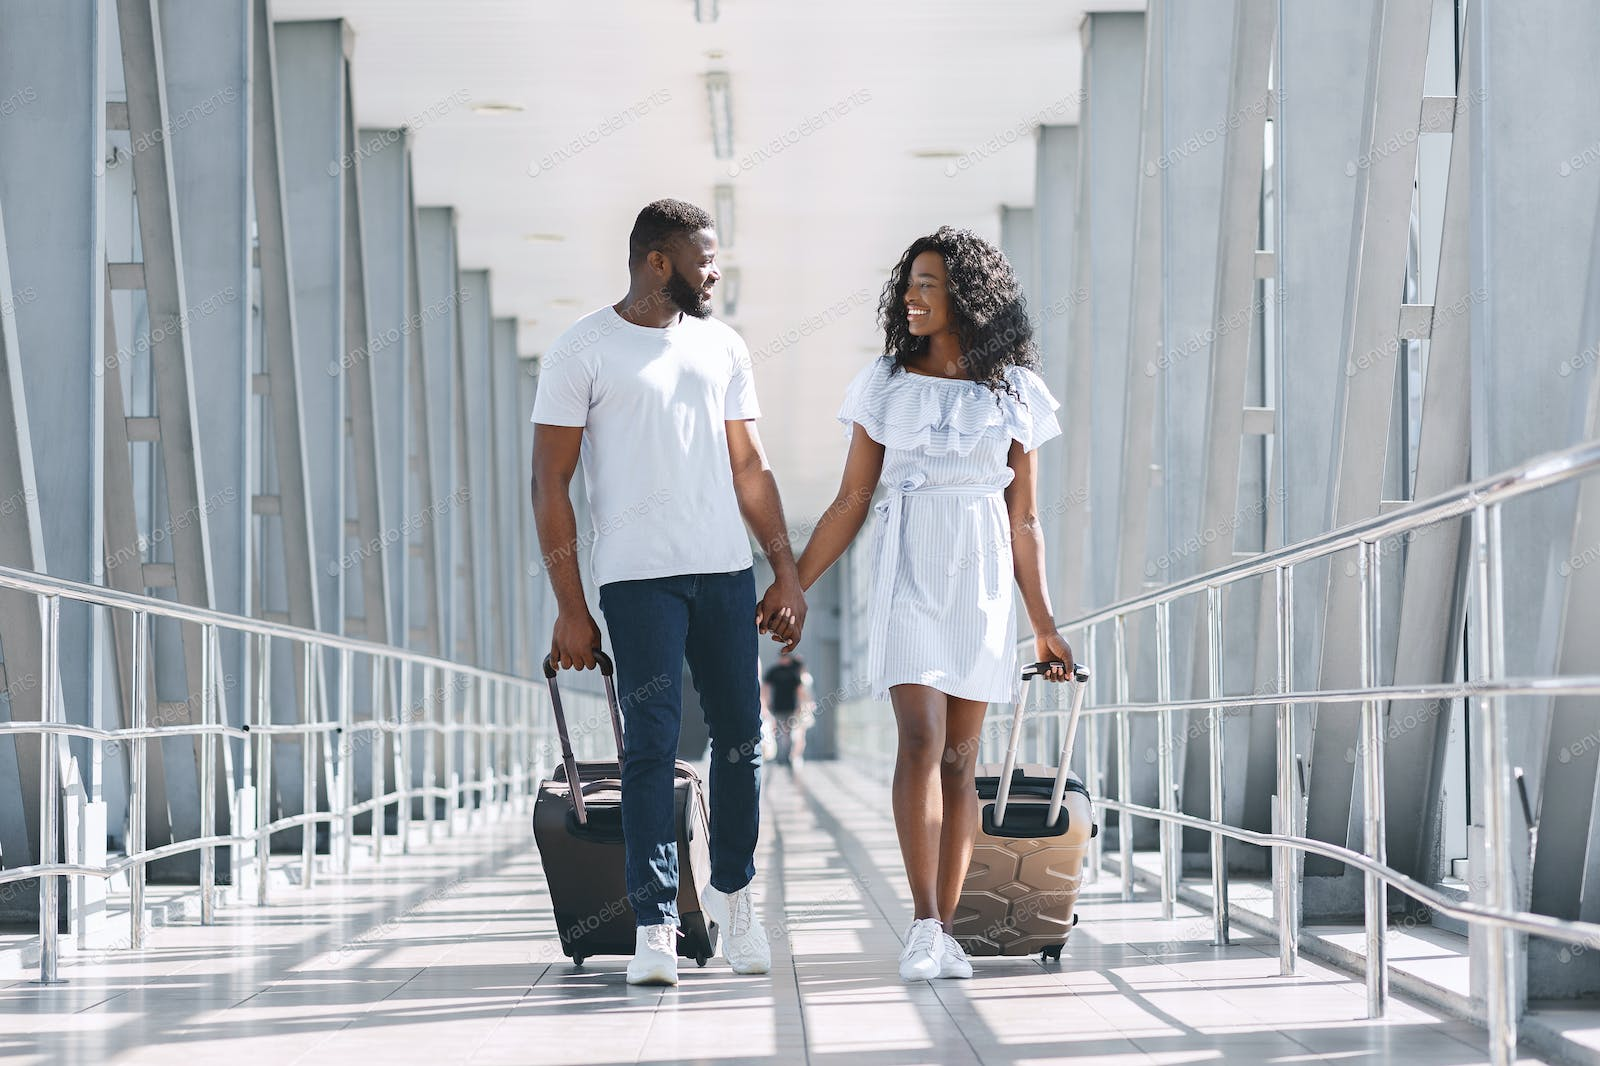 Black Couple In Love Going On Flight Departure With Suitcases Photo By Prostock Studio On Envato Elements